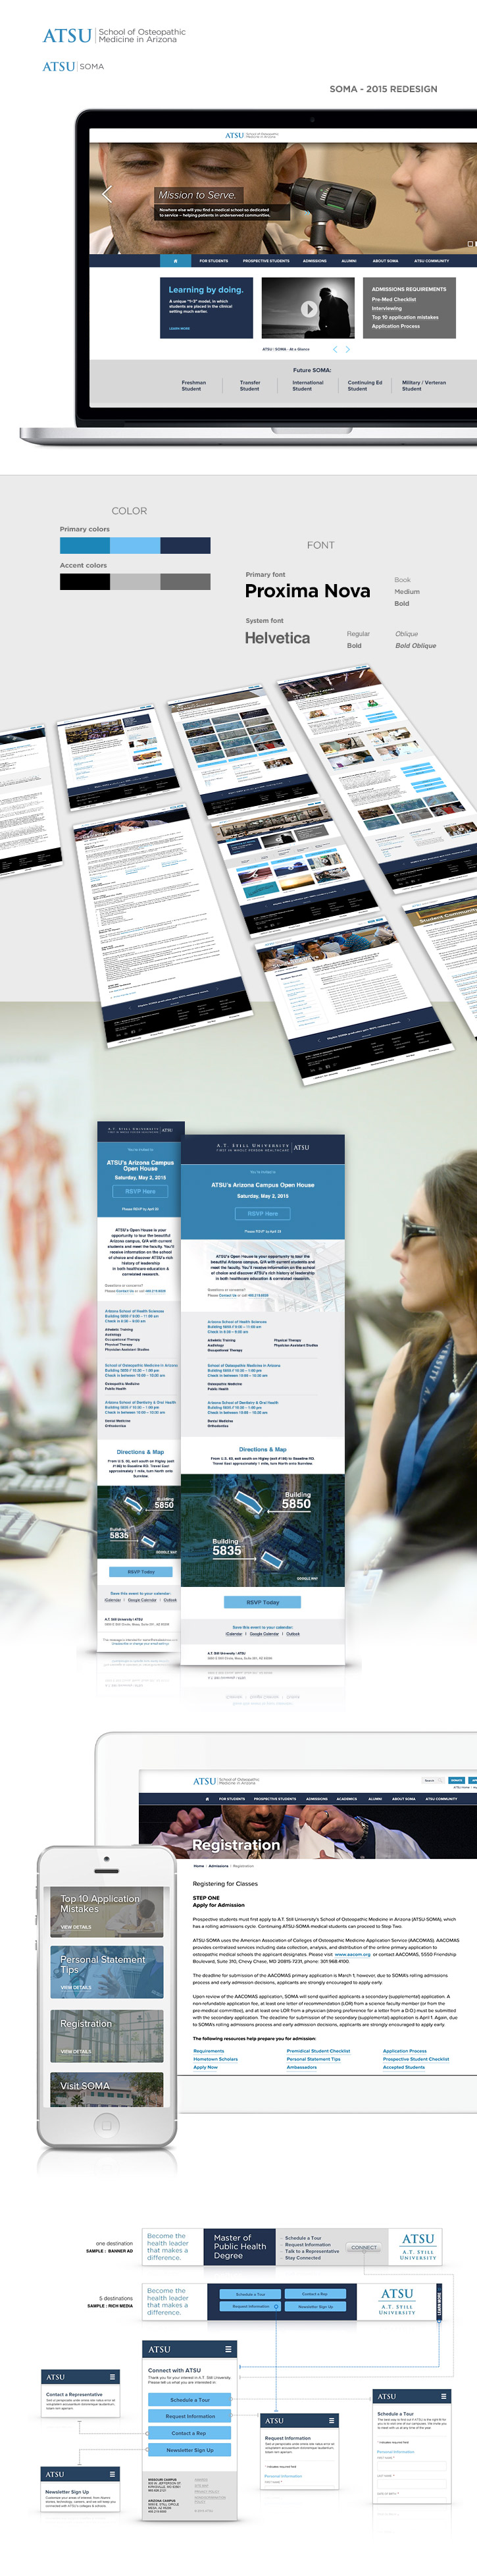 Responsive design, UX design, Information Architecture, Tertiary pages